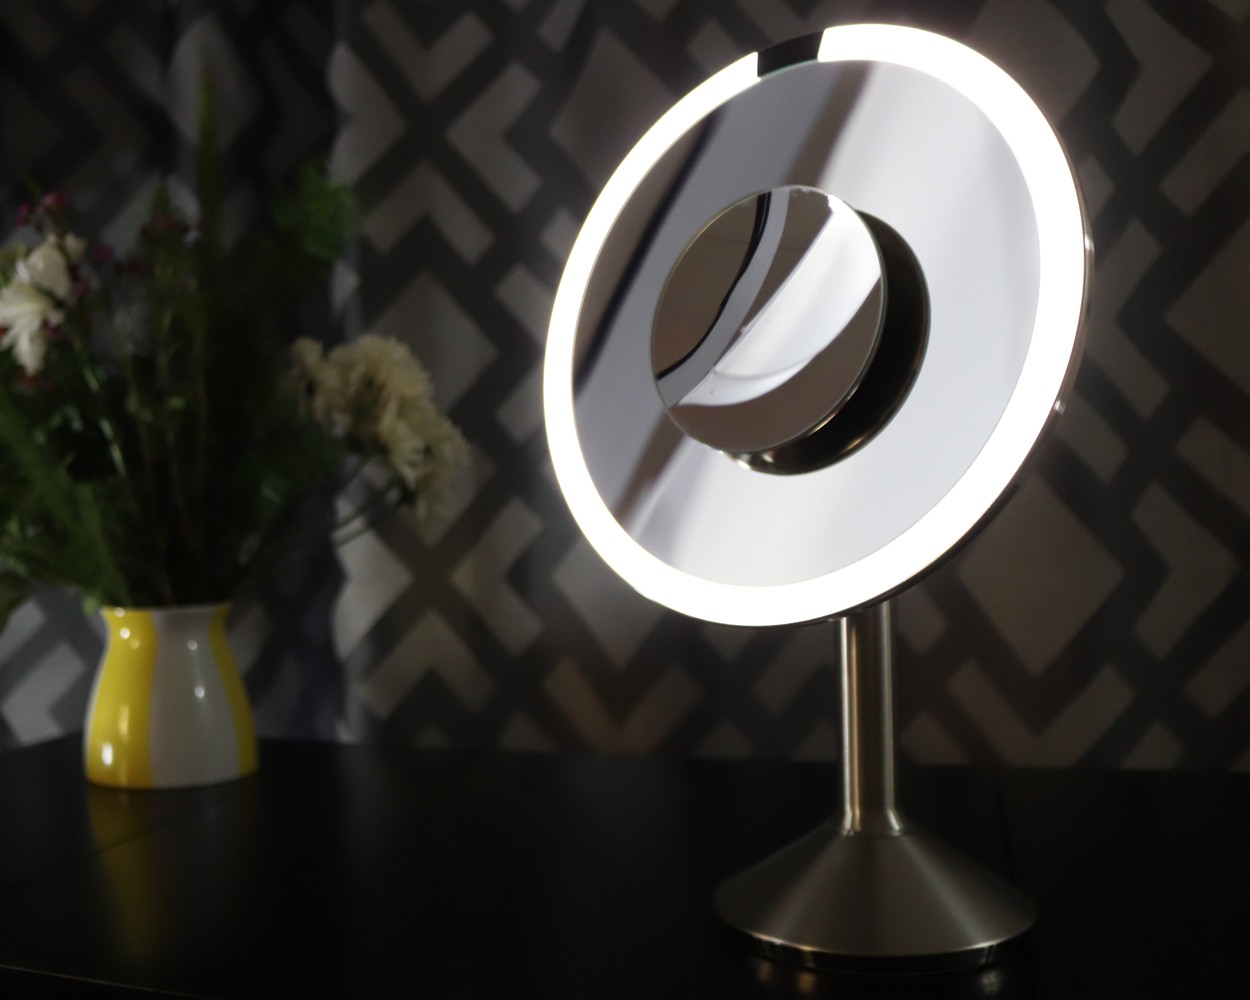 SimpleHuman Sensor Mirror 8 Inch Pro Review - SimpleHuman Mirrors Changed My Makeup Game by LA cruelty free beauty blogger My Beauty Bunny